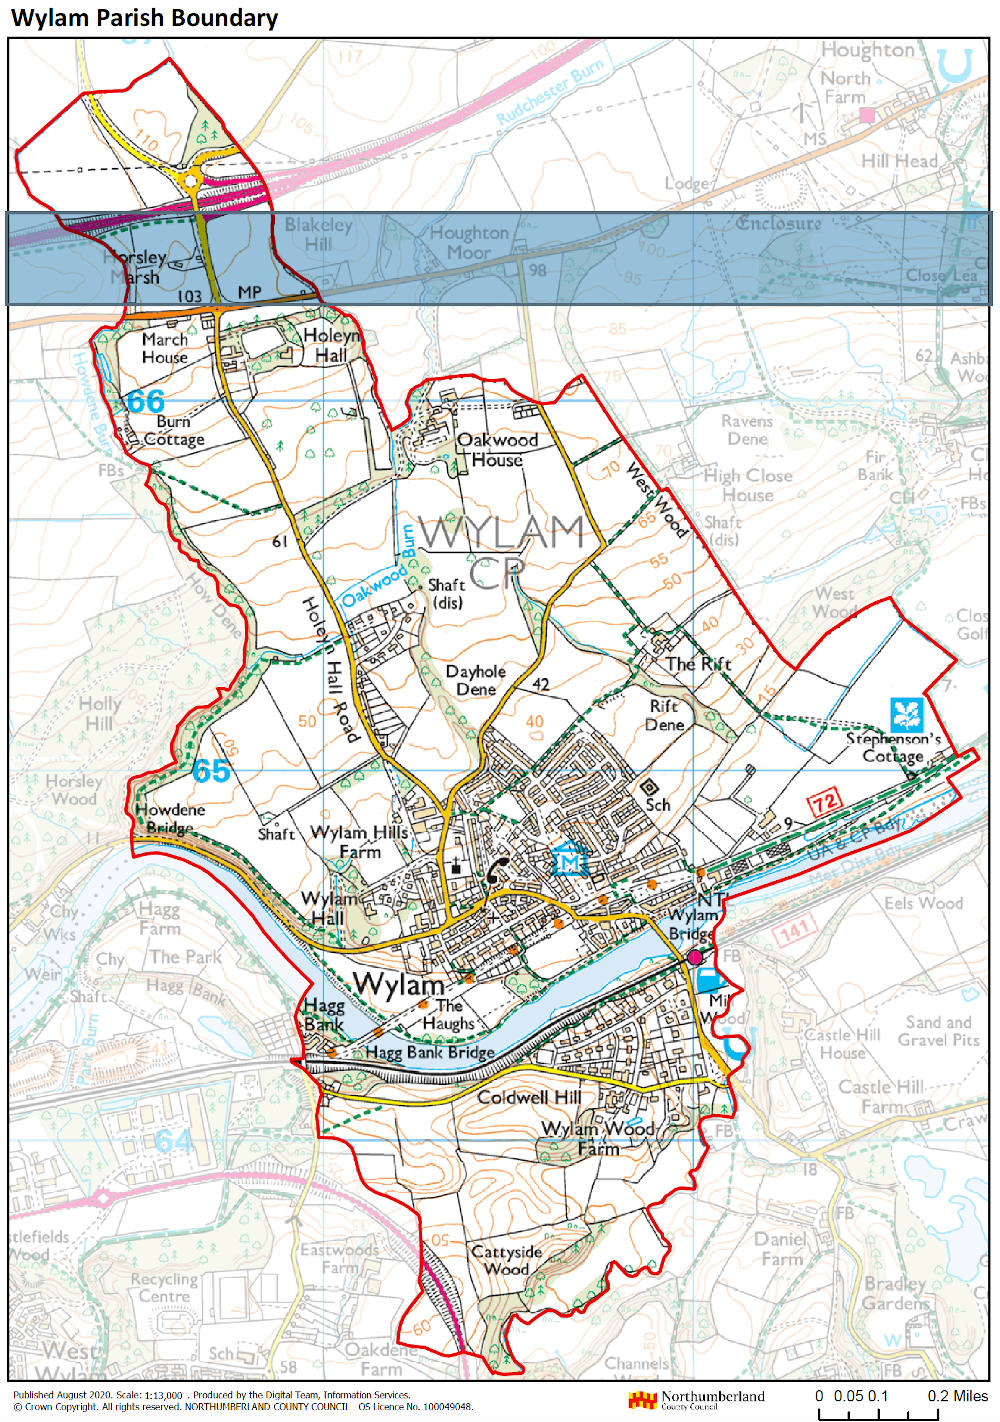 Ordnance Survey map image showing the boundary of Wylam Parish Council